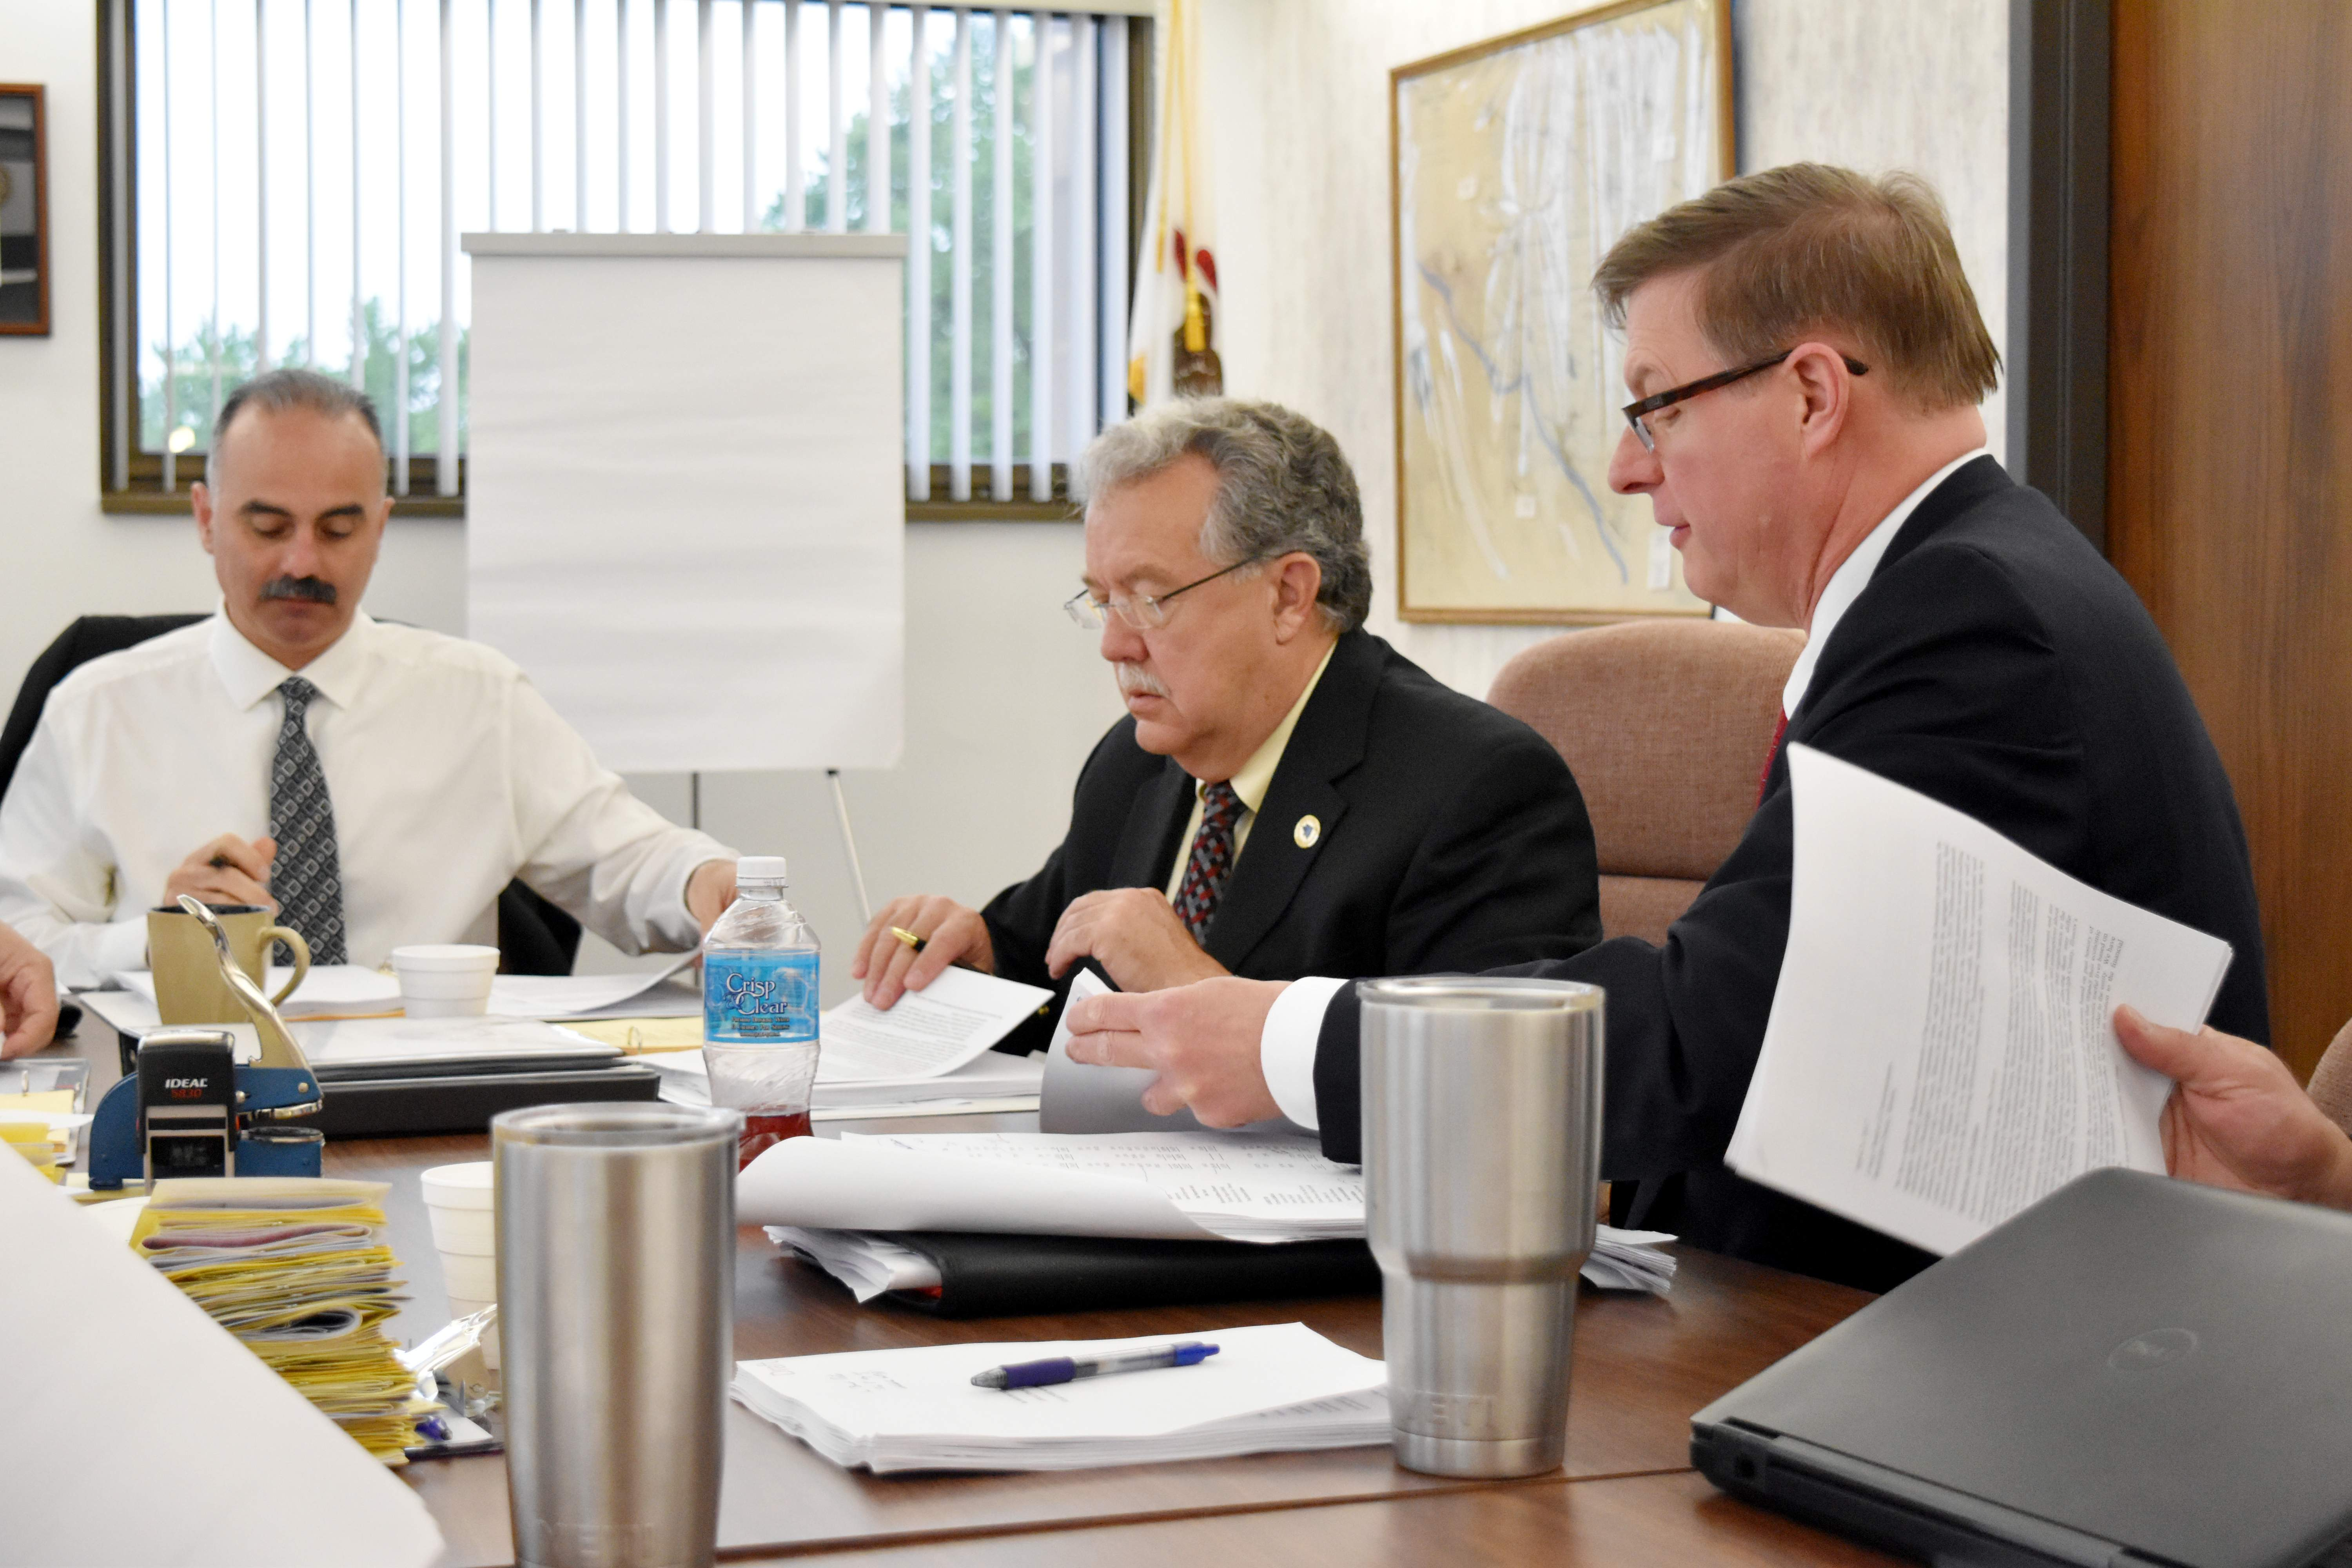 Jim Schmersahl (right), Randolph County's CPA, looks at budget documents during a discussion of the county's fiscal year 2016 audit with the county commissioners on April 21. Also pictured is Board Chairman Ronnie White (left) and Commissioner Marc Kiehna (center).